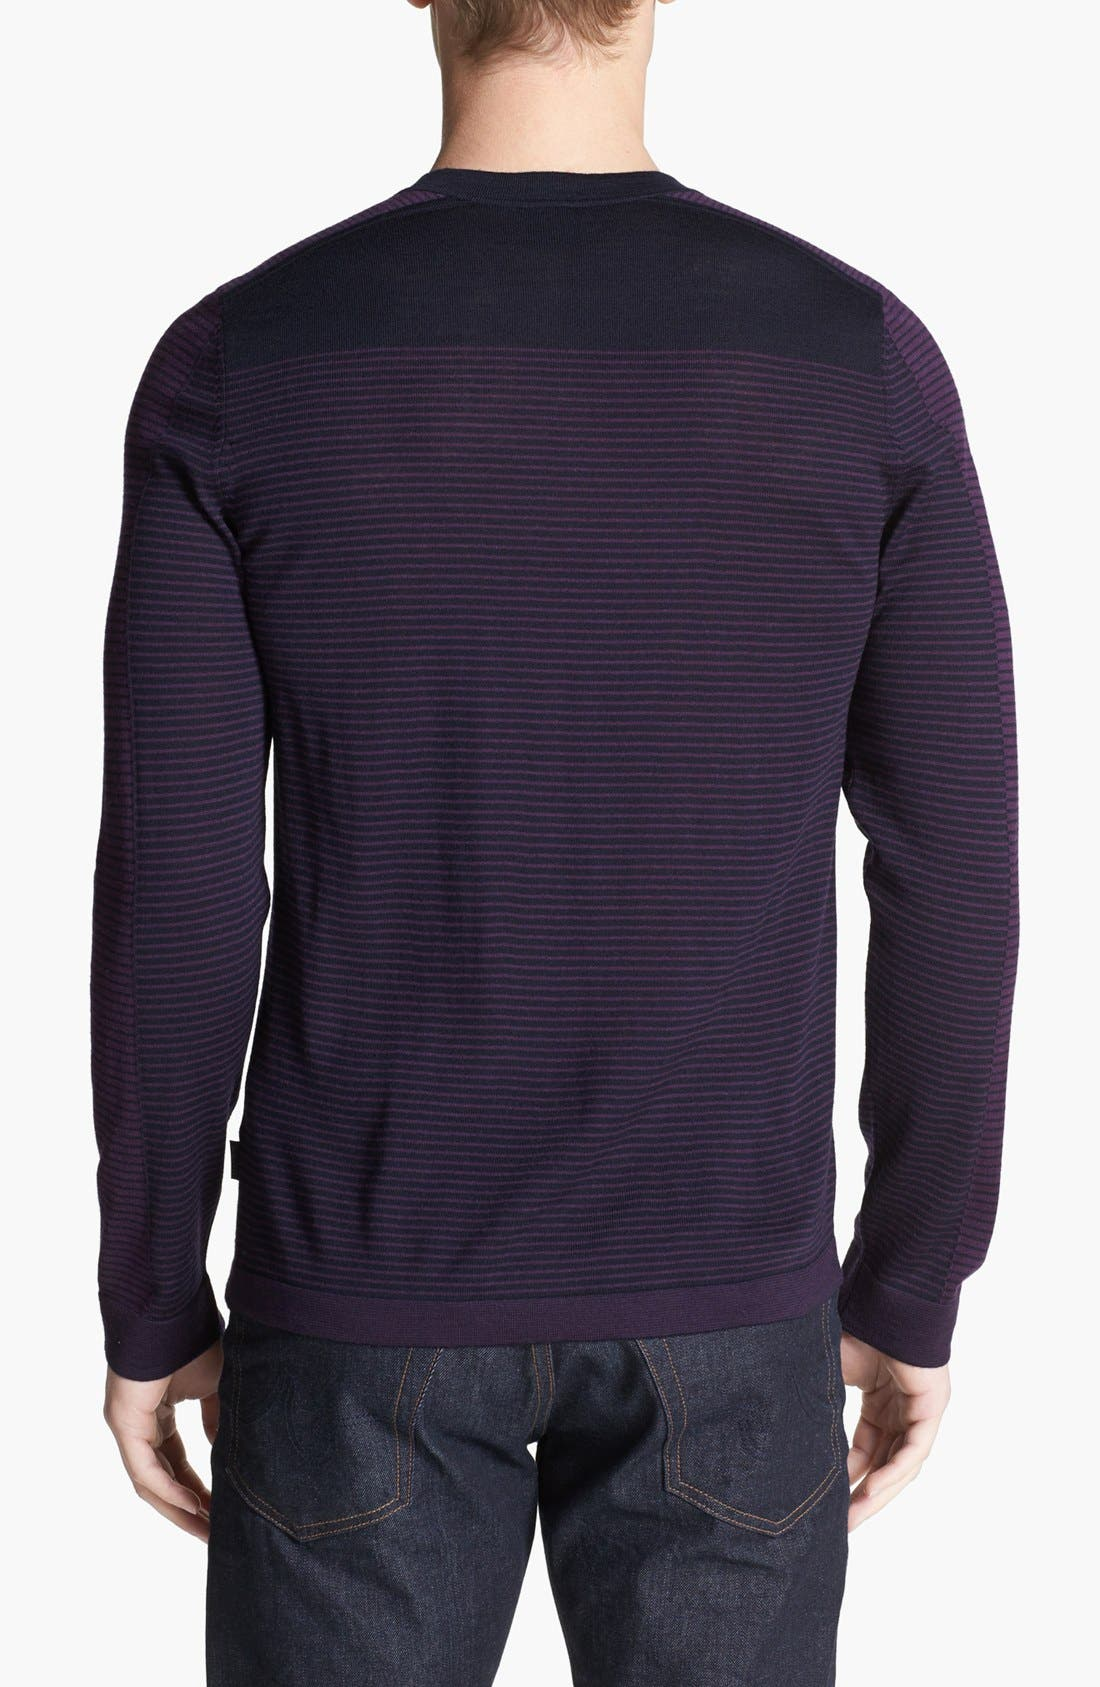 Alternate Image 2  - BOSS HUGO BOSS 'Merro' Merino Wool Sweater